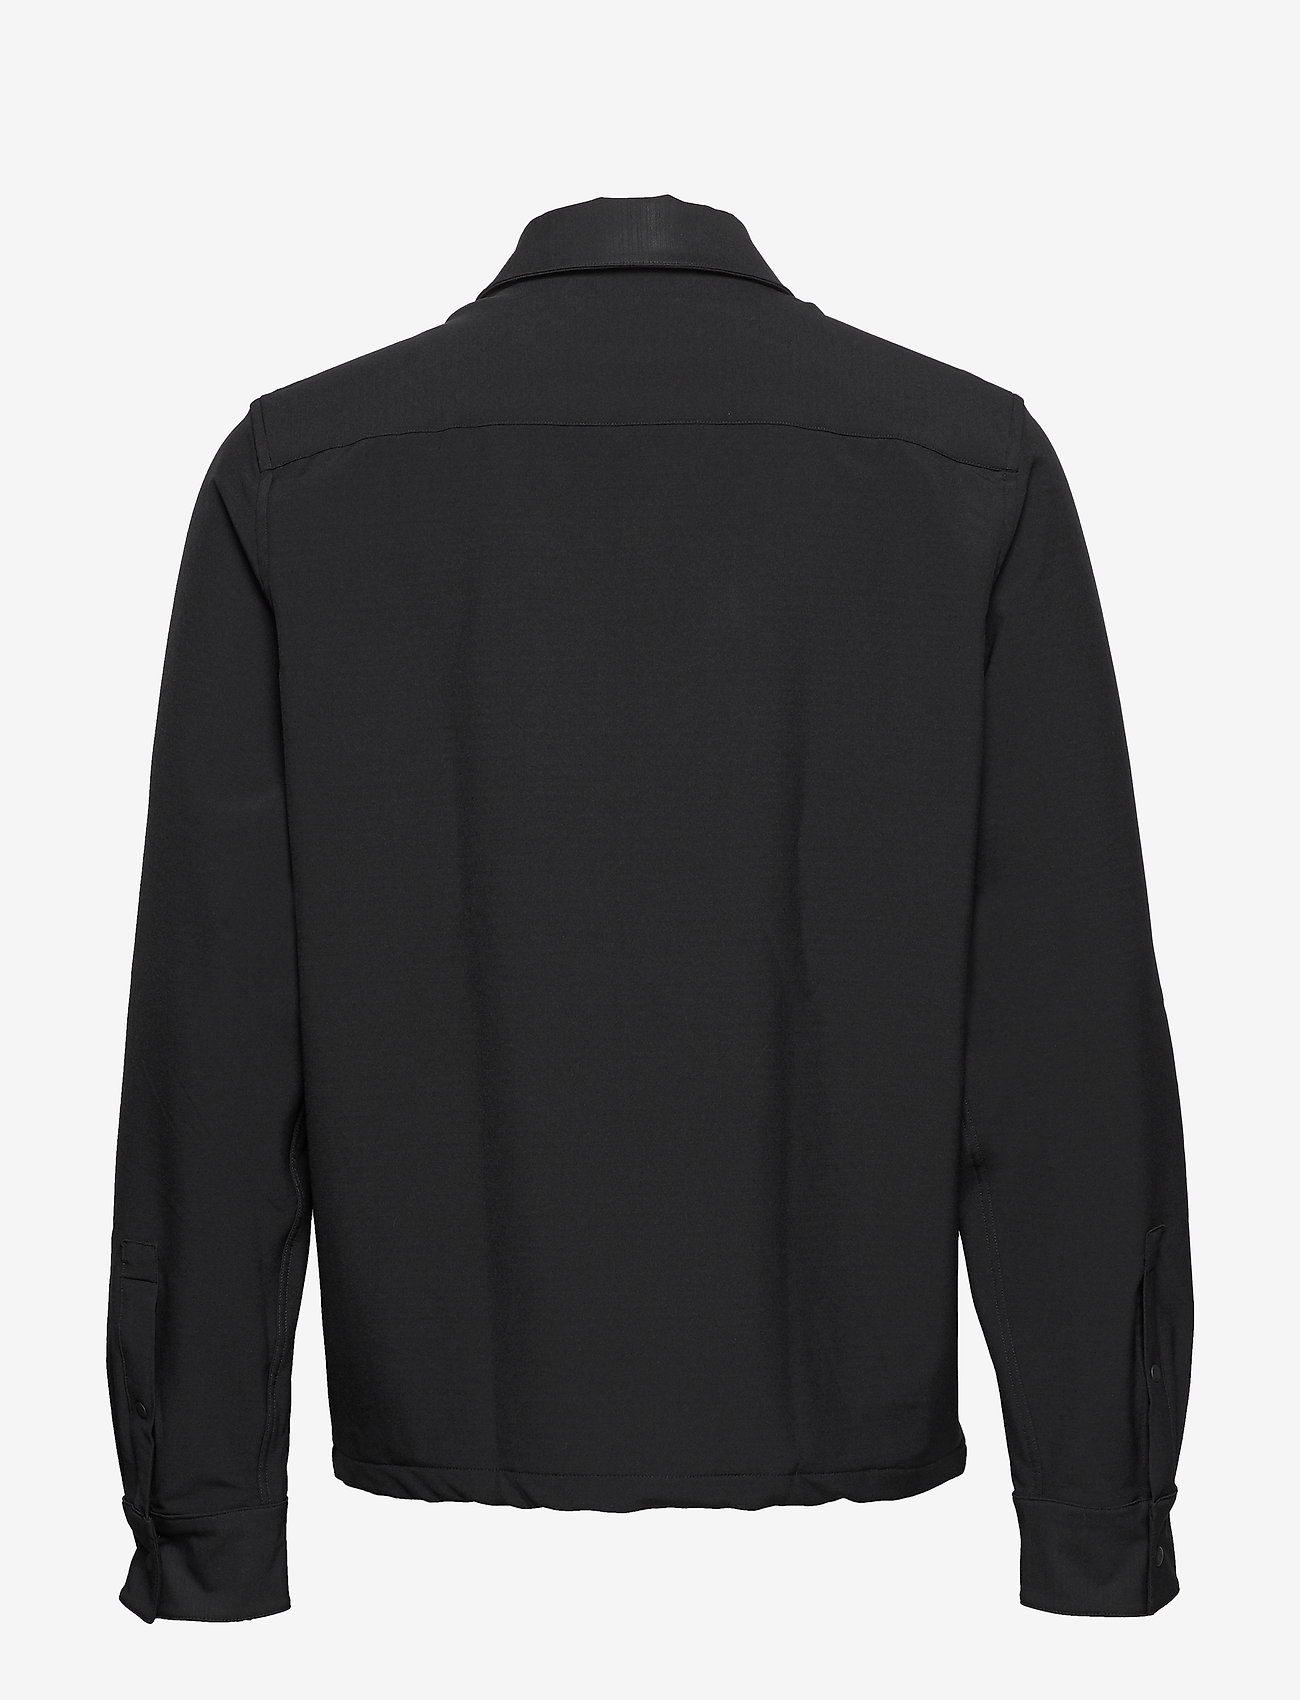 Calvin Klein - TECHNICAL STRETCH SHIRT - overshirts - calvin black - 1